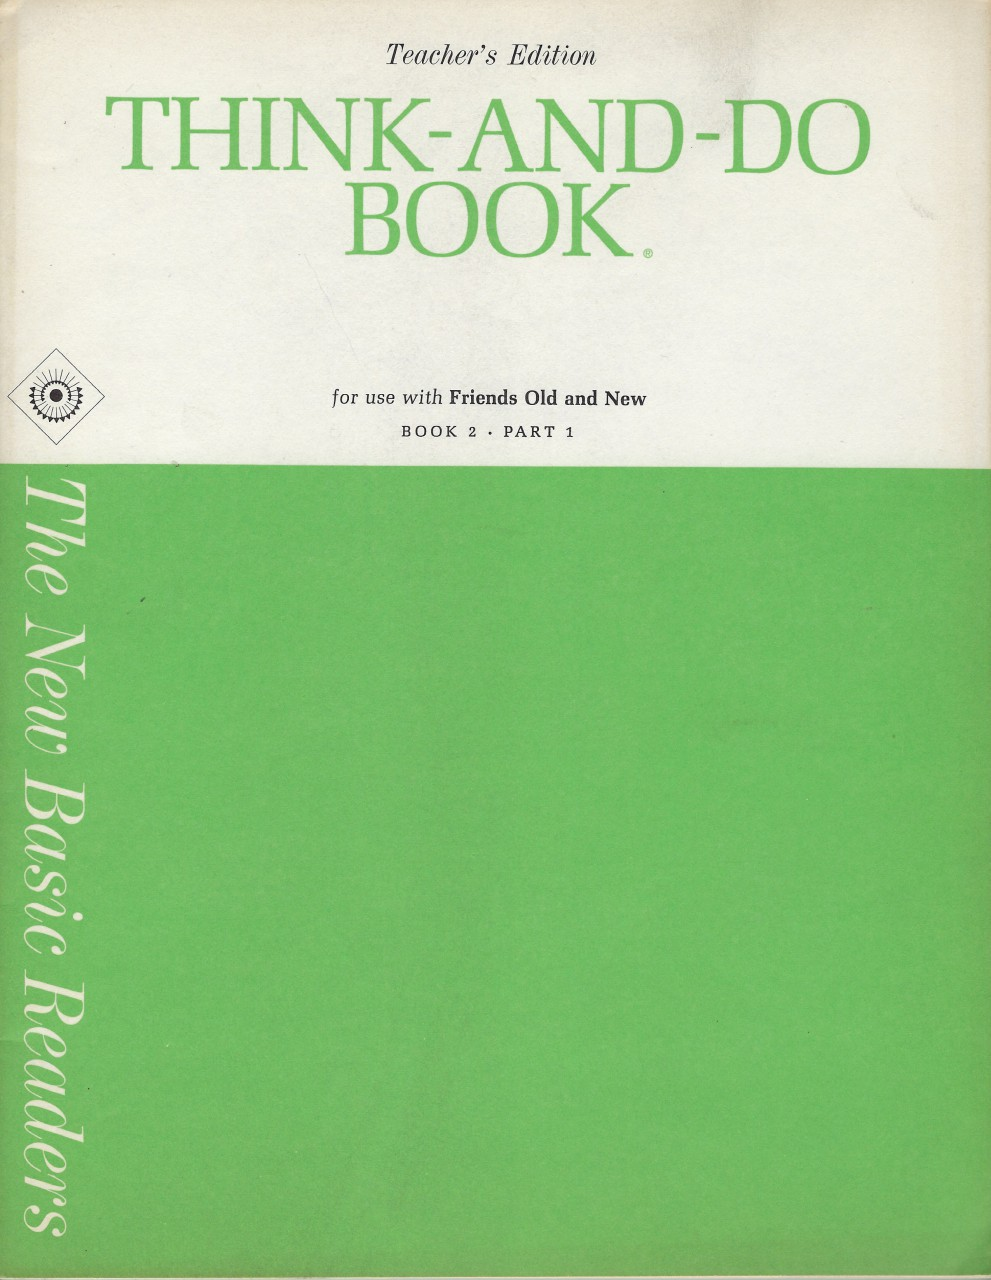 Think and Do Book Teacher's Edition Friends Old and New 1965 Dick & Jane, Gray, William S. & Monroe, Marion